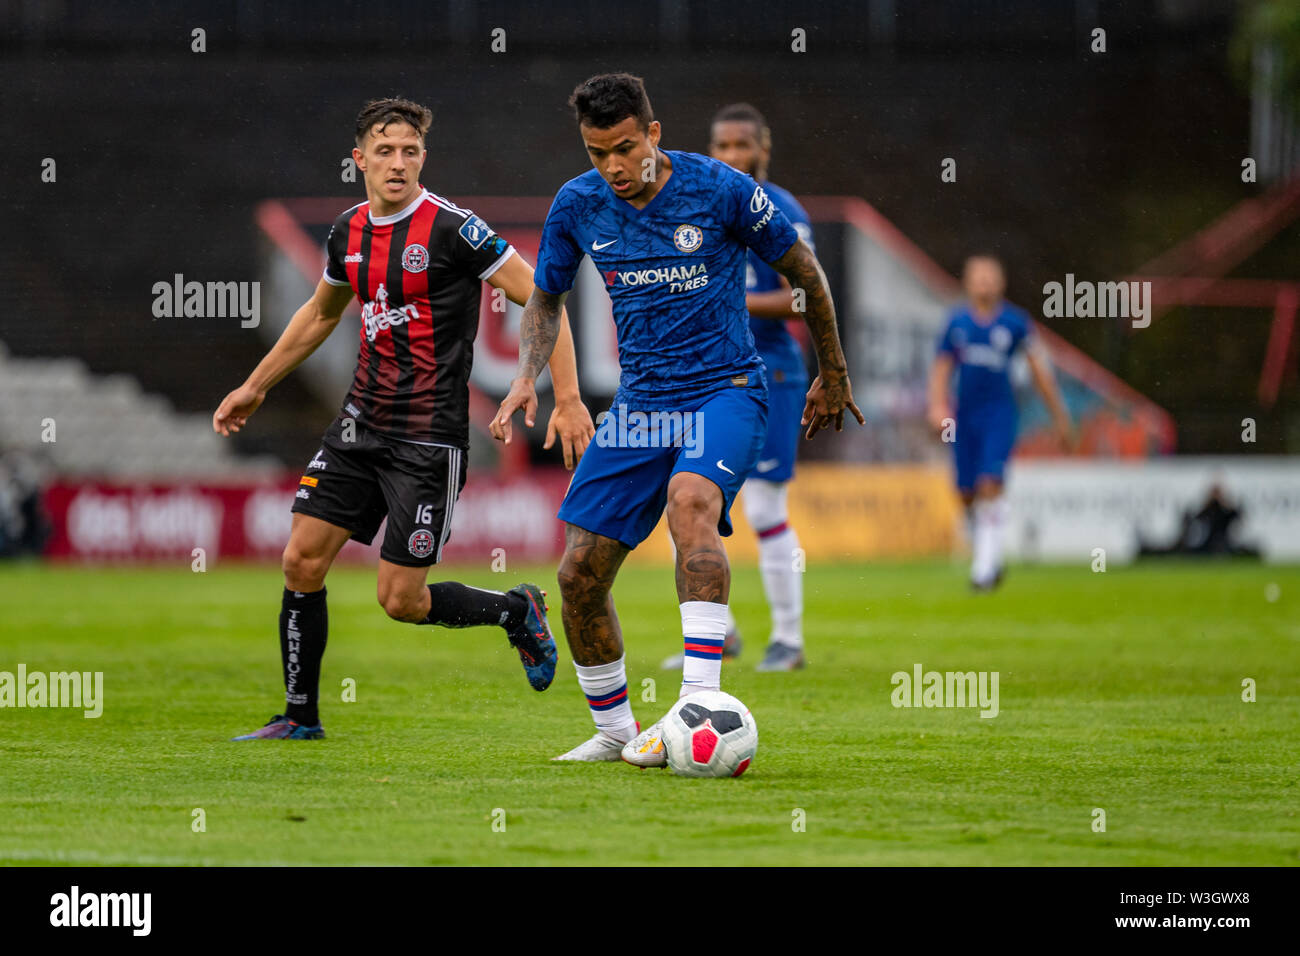 Kenedy (Robert Kenedy Nunes Nascimento) from Chelsea in action during Chelsea's pre season friendly match against Bohemian FC in Dublin. Final Score 1-1. - Stock Image